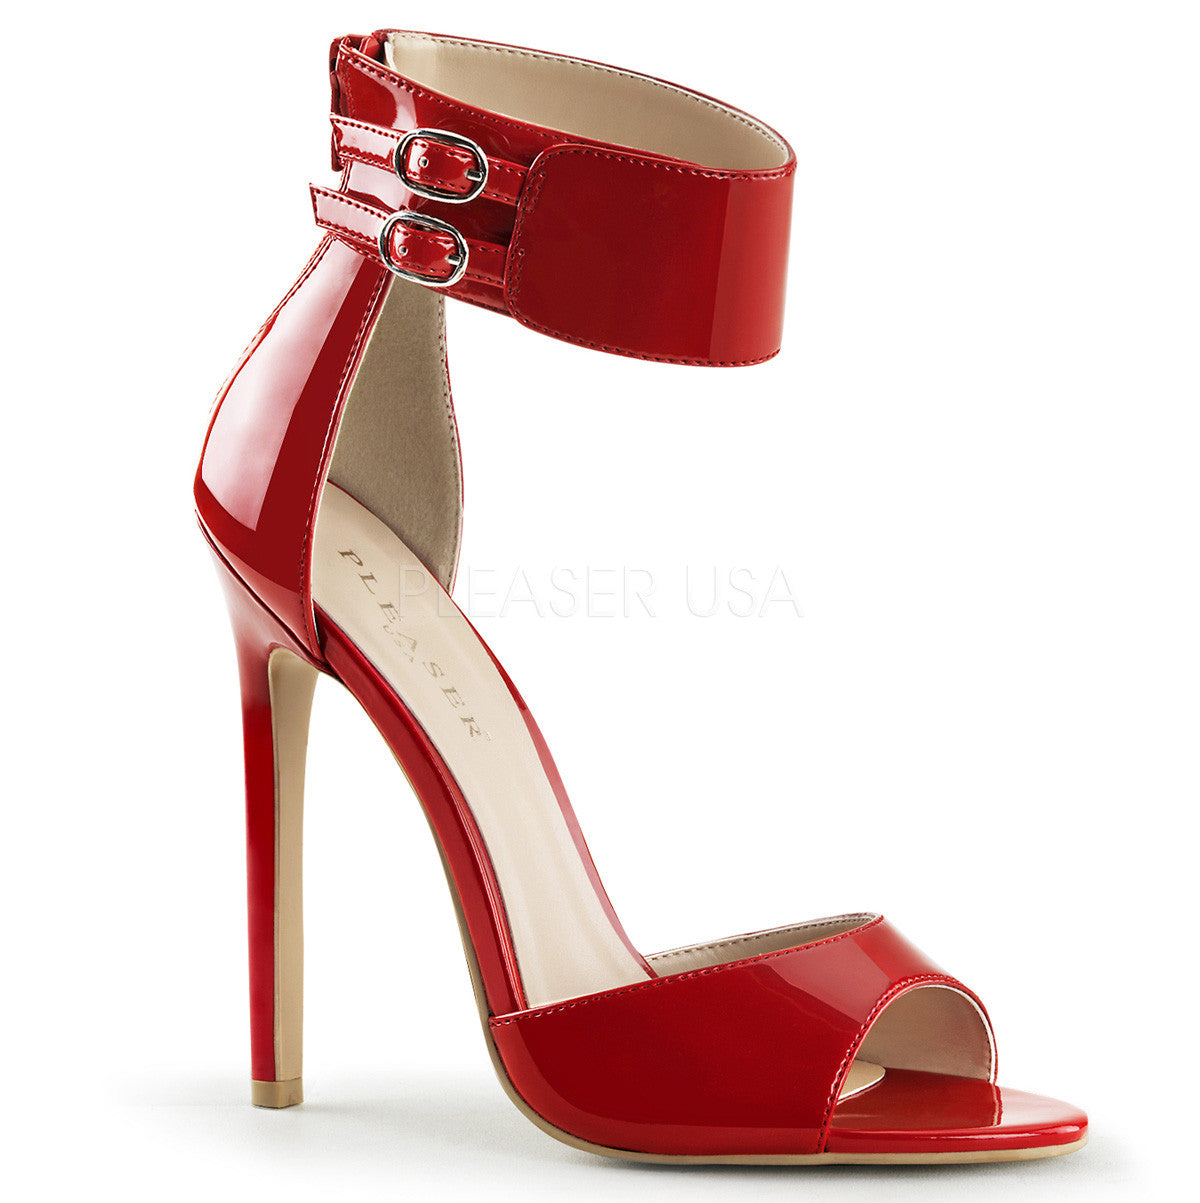 Pleaser SEXY-19 Red Patent Ankle Strap Sandals - Shoecup.com